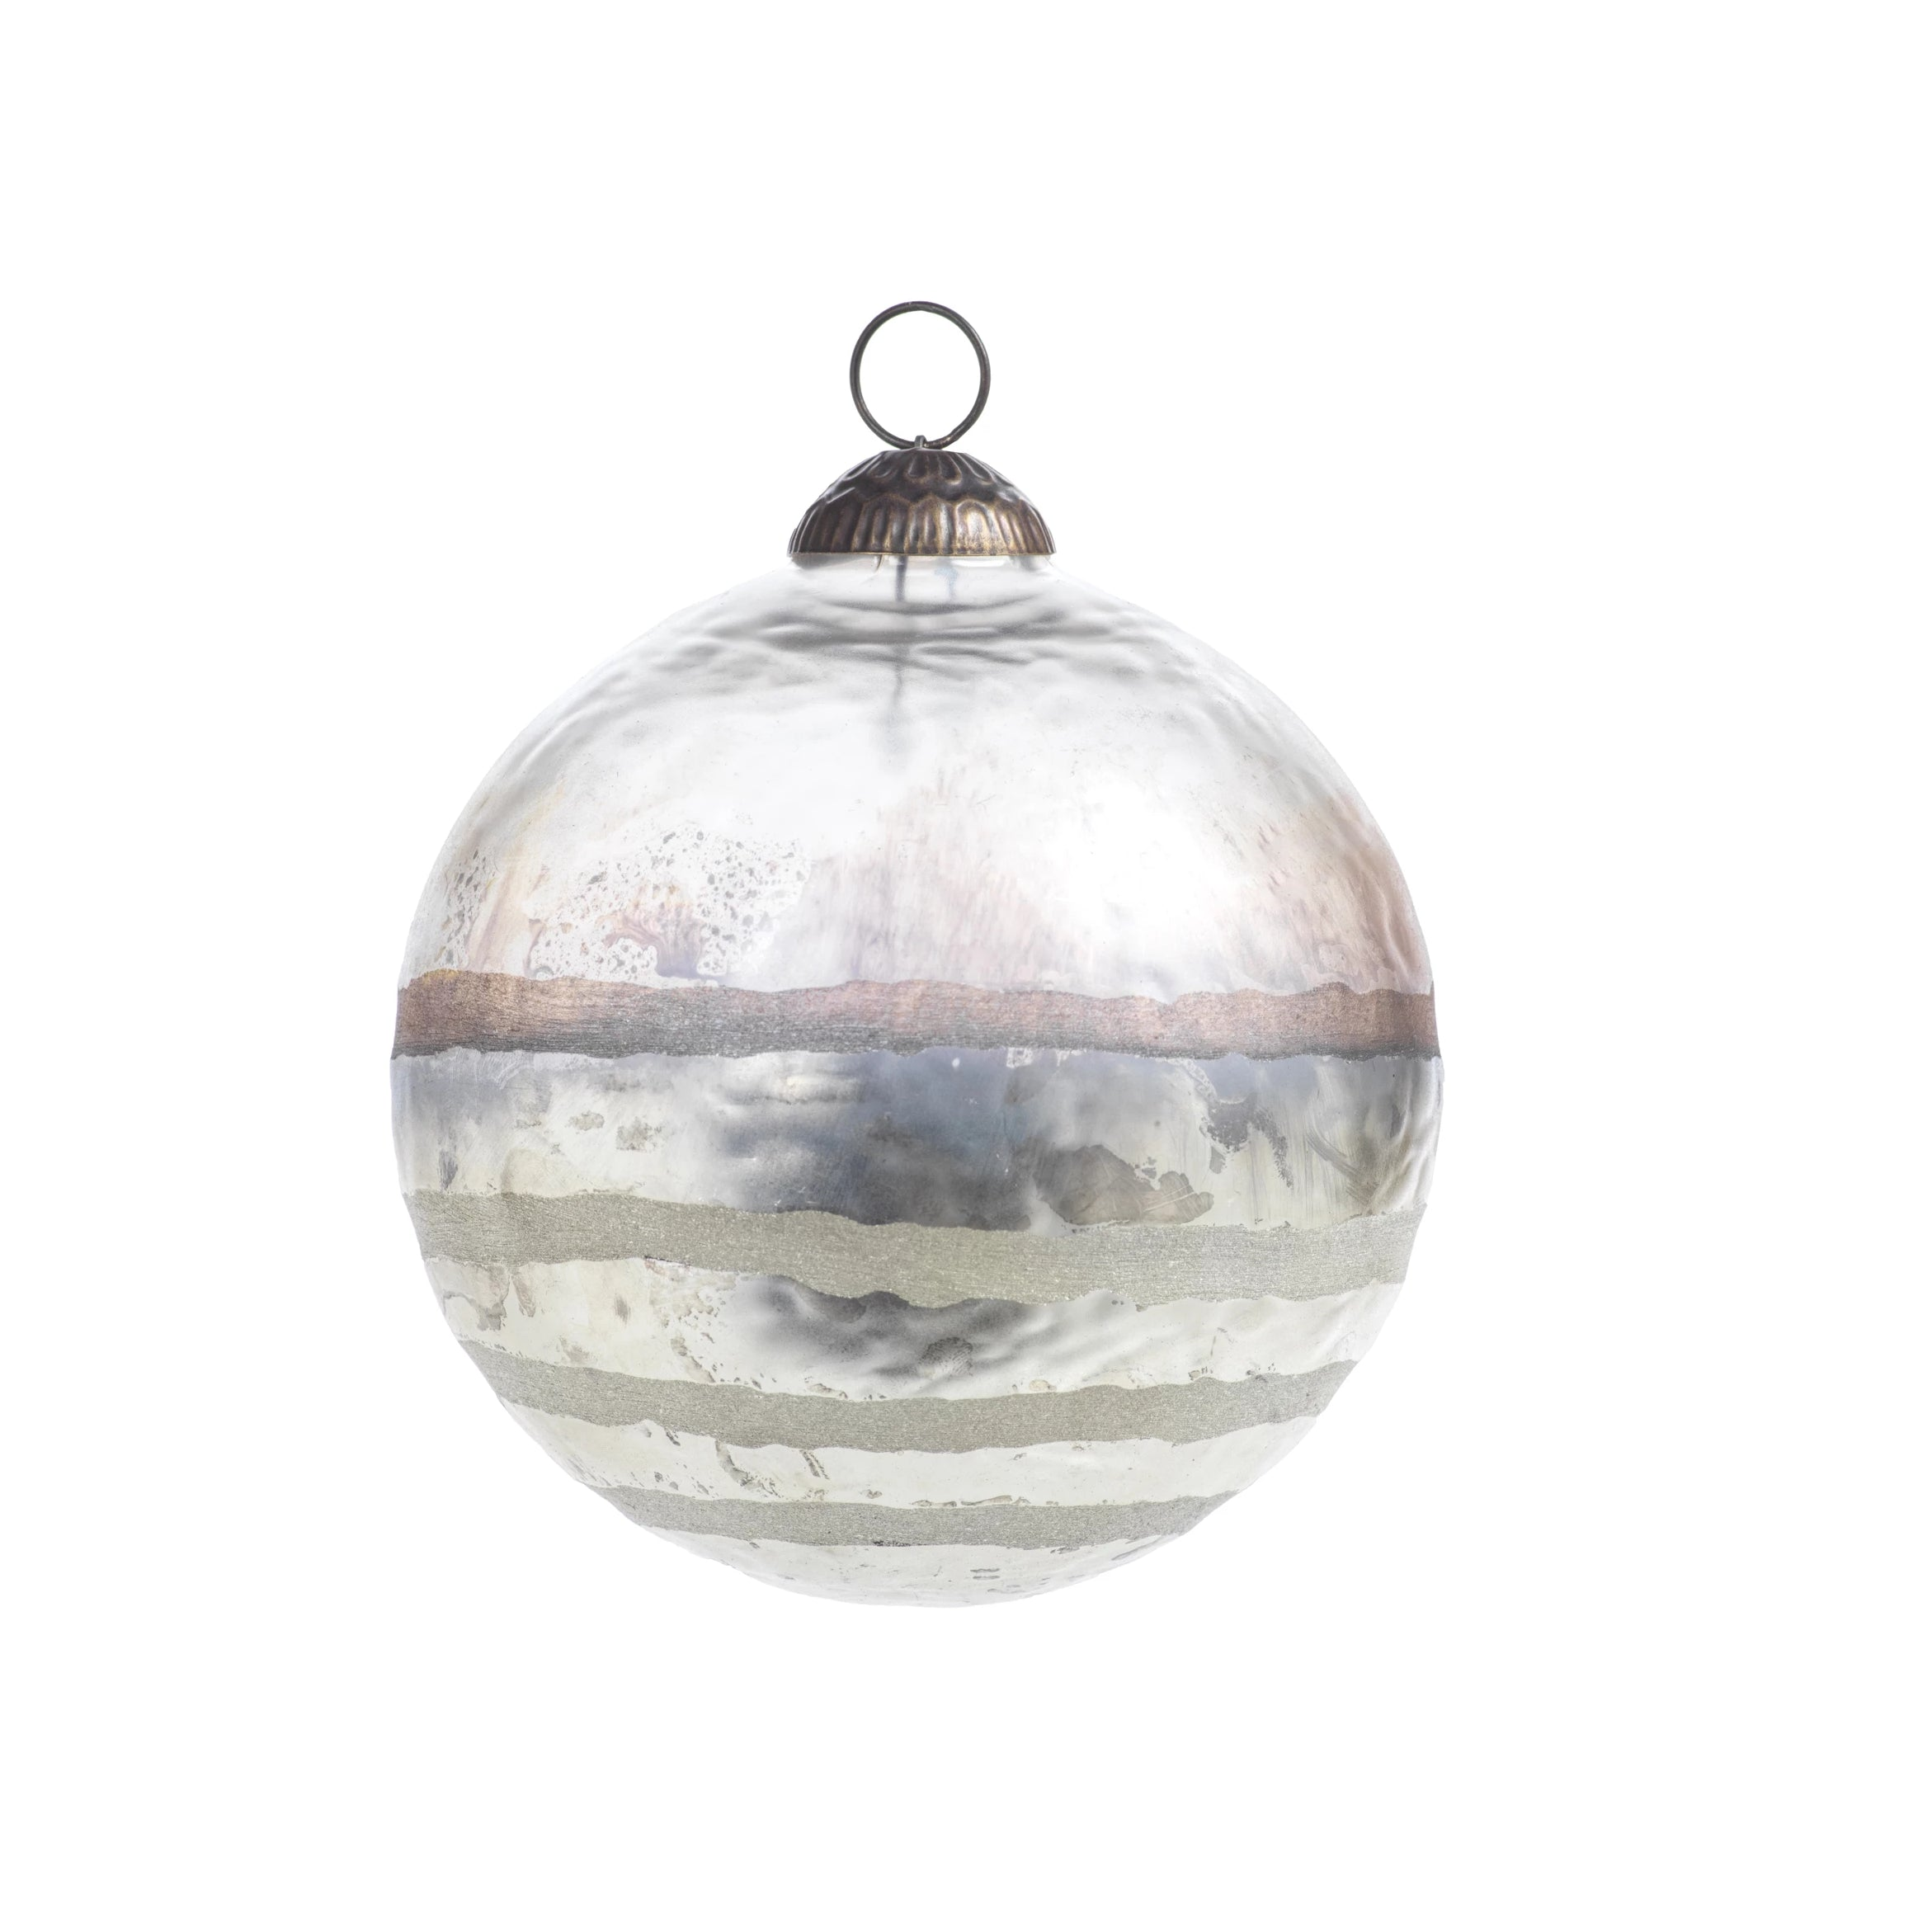 Smoked Ball Ornament - CARLYLE AVENUE